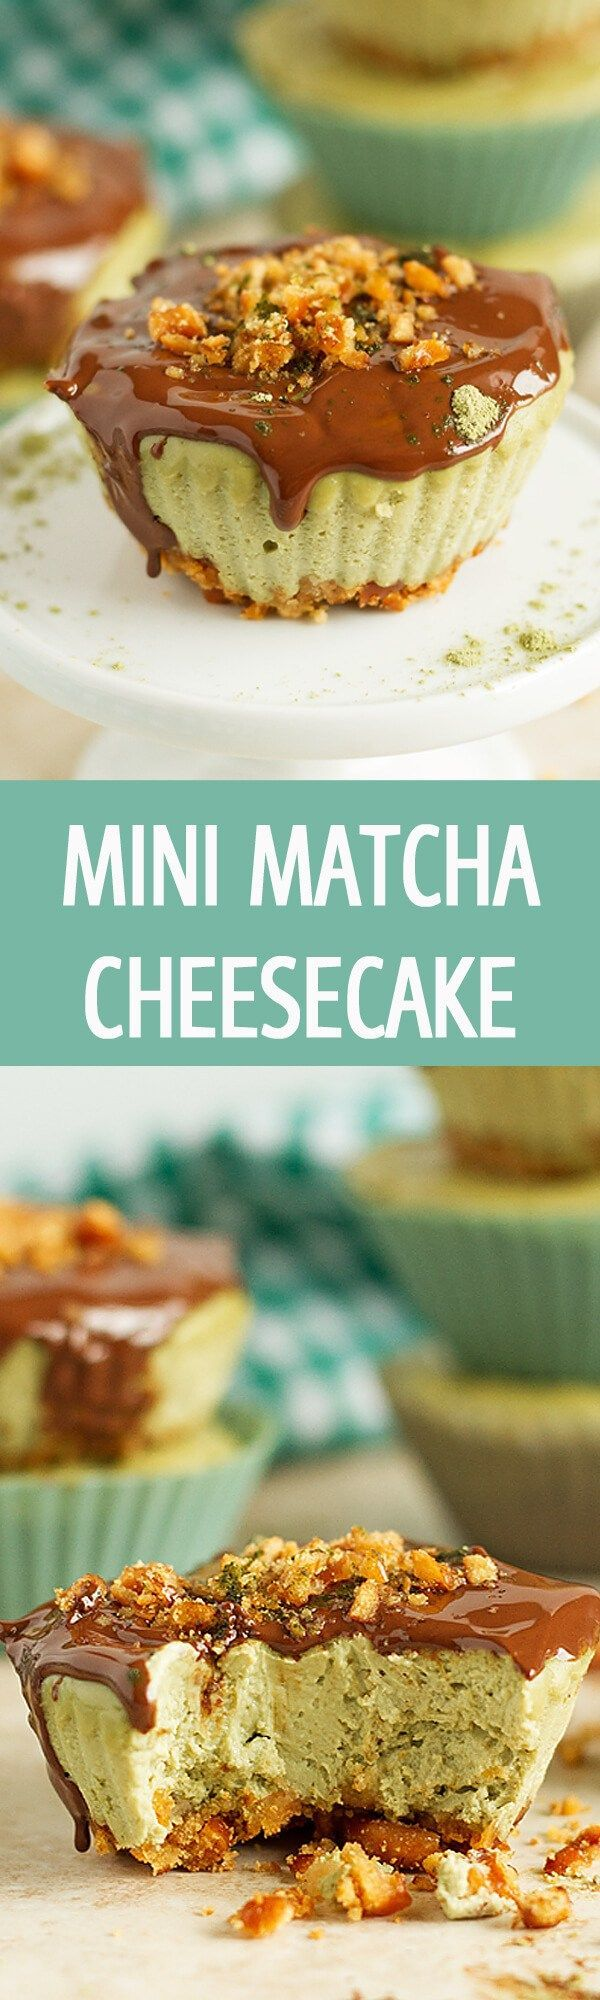 Mini soft matcha cheesecake recipe with crunchy bottom crust and a layer of chocolate. Delicious green tea cheesecake cupcakes are great for any party! by ilonaspassion.com I @ilonaspassion